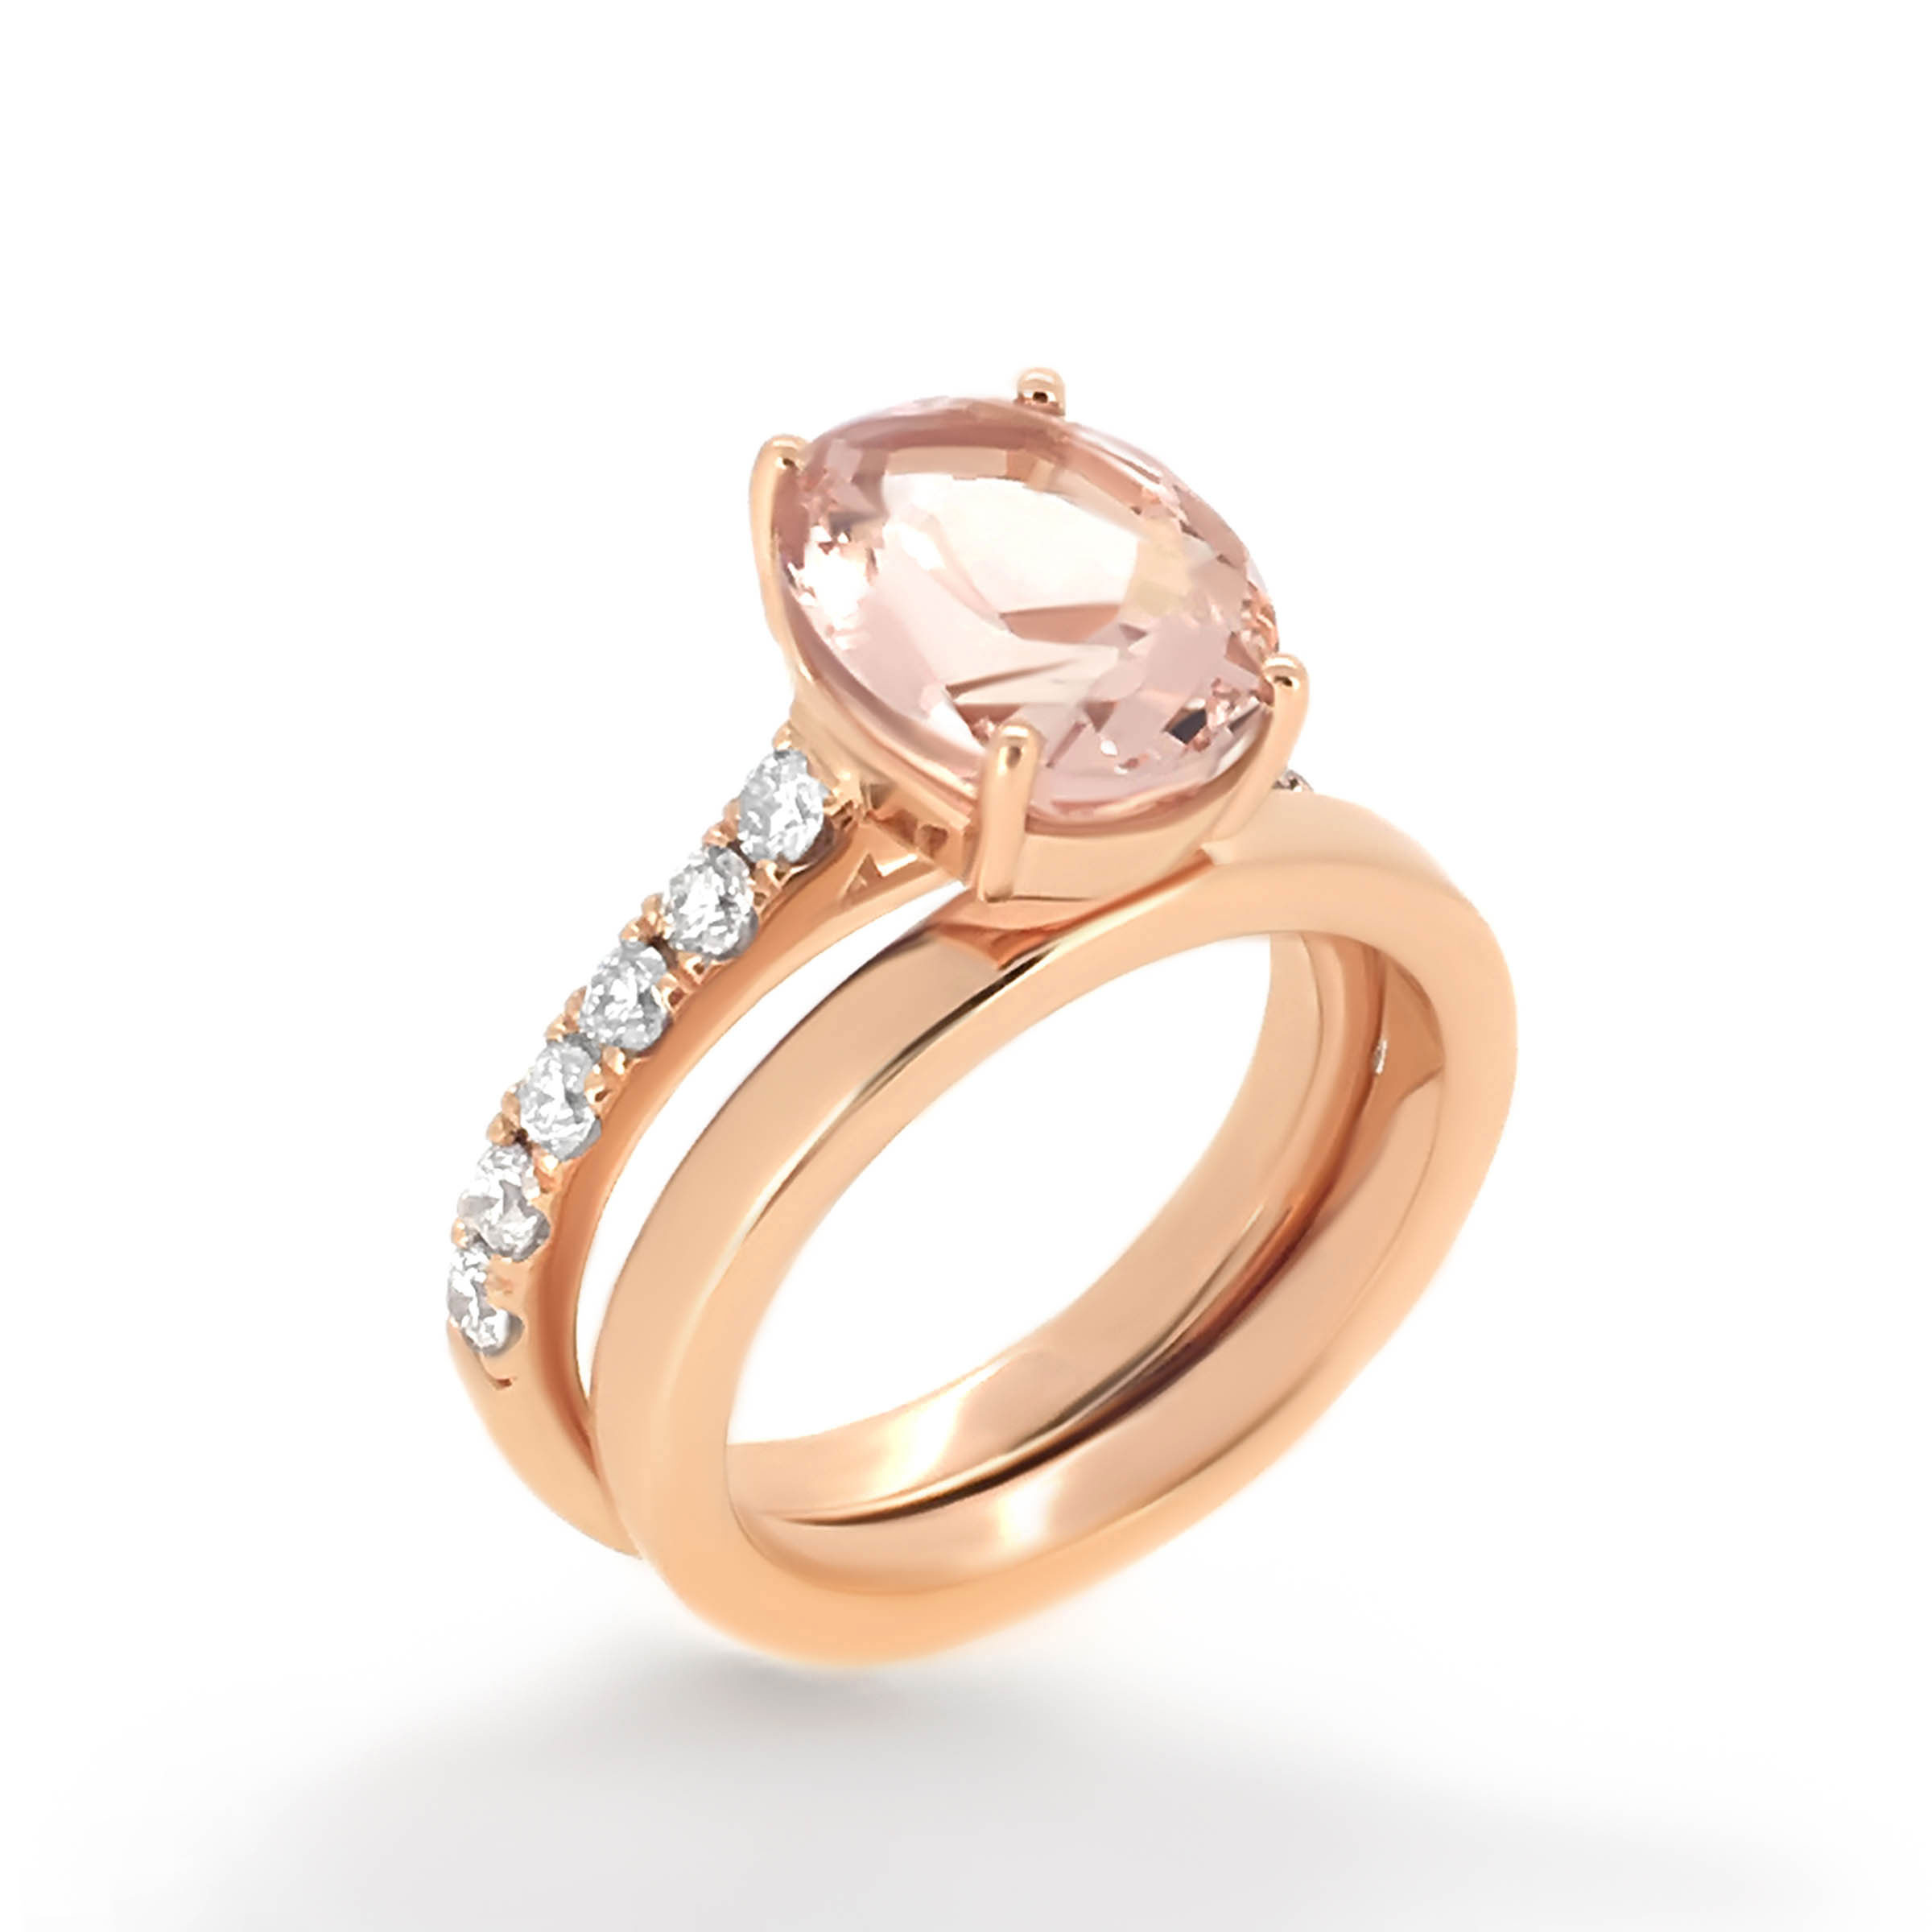 colored of engagement stone wedding rings the sapphire ring blog blue heart ritani and meaning gemstone pink